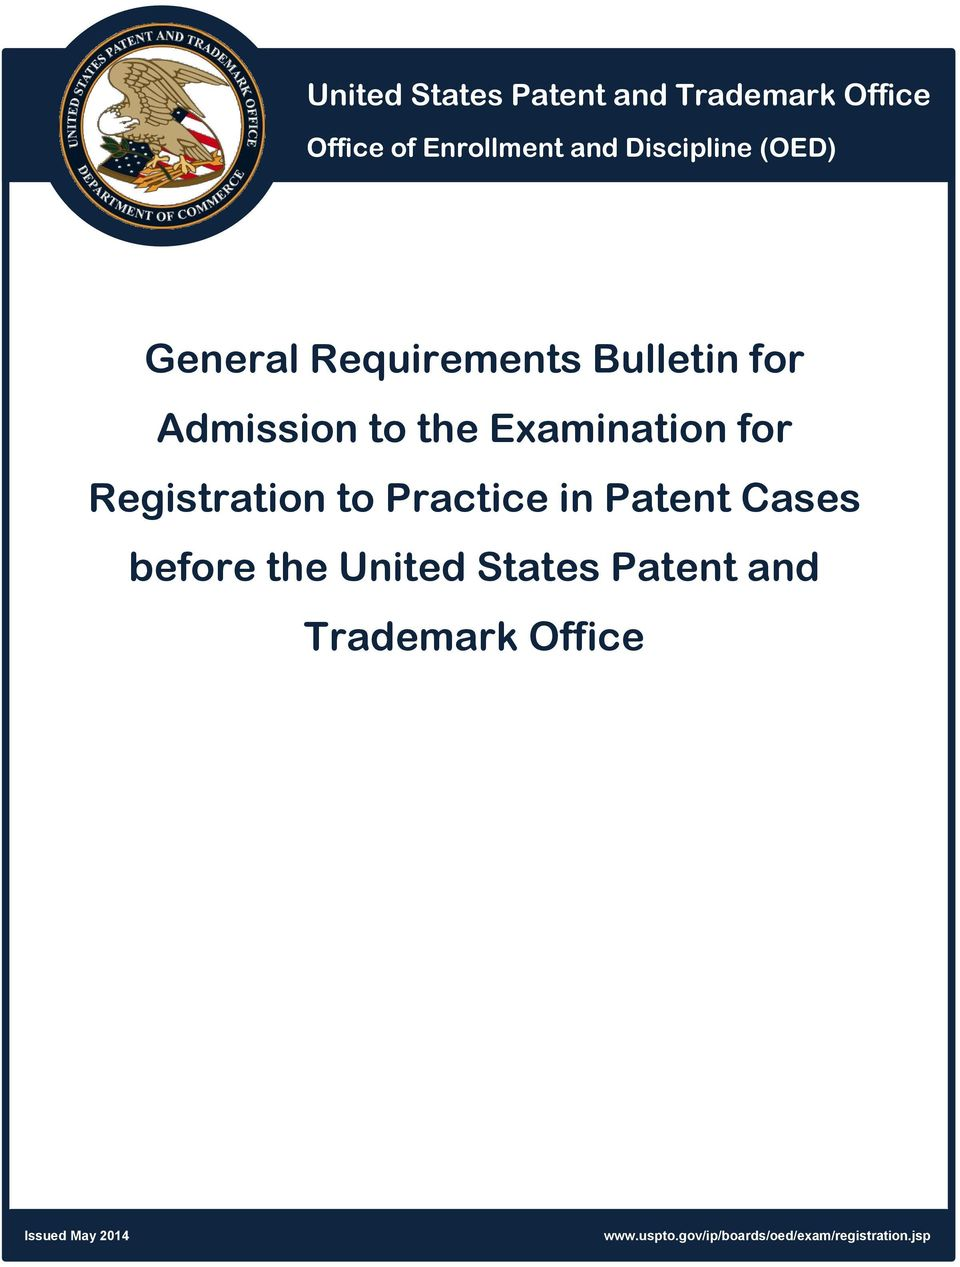 Registration to Practice in Patent Cases before the United States Patent and